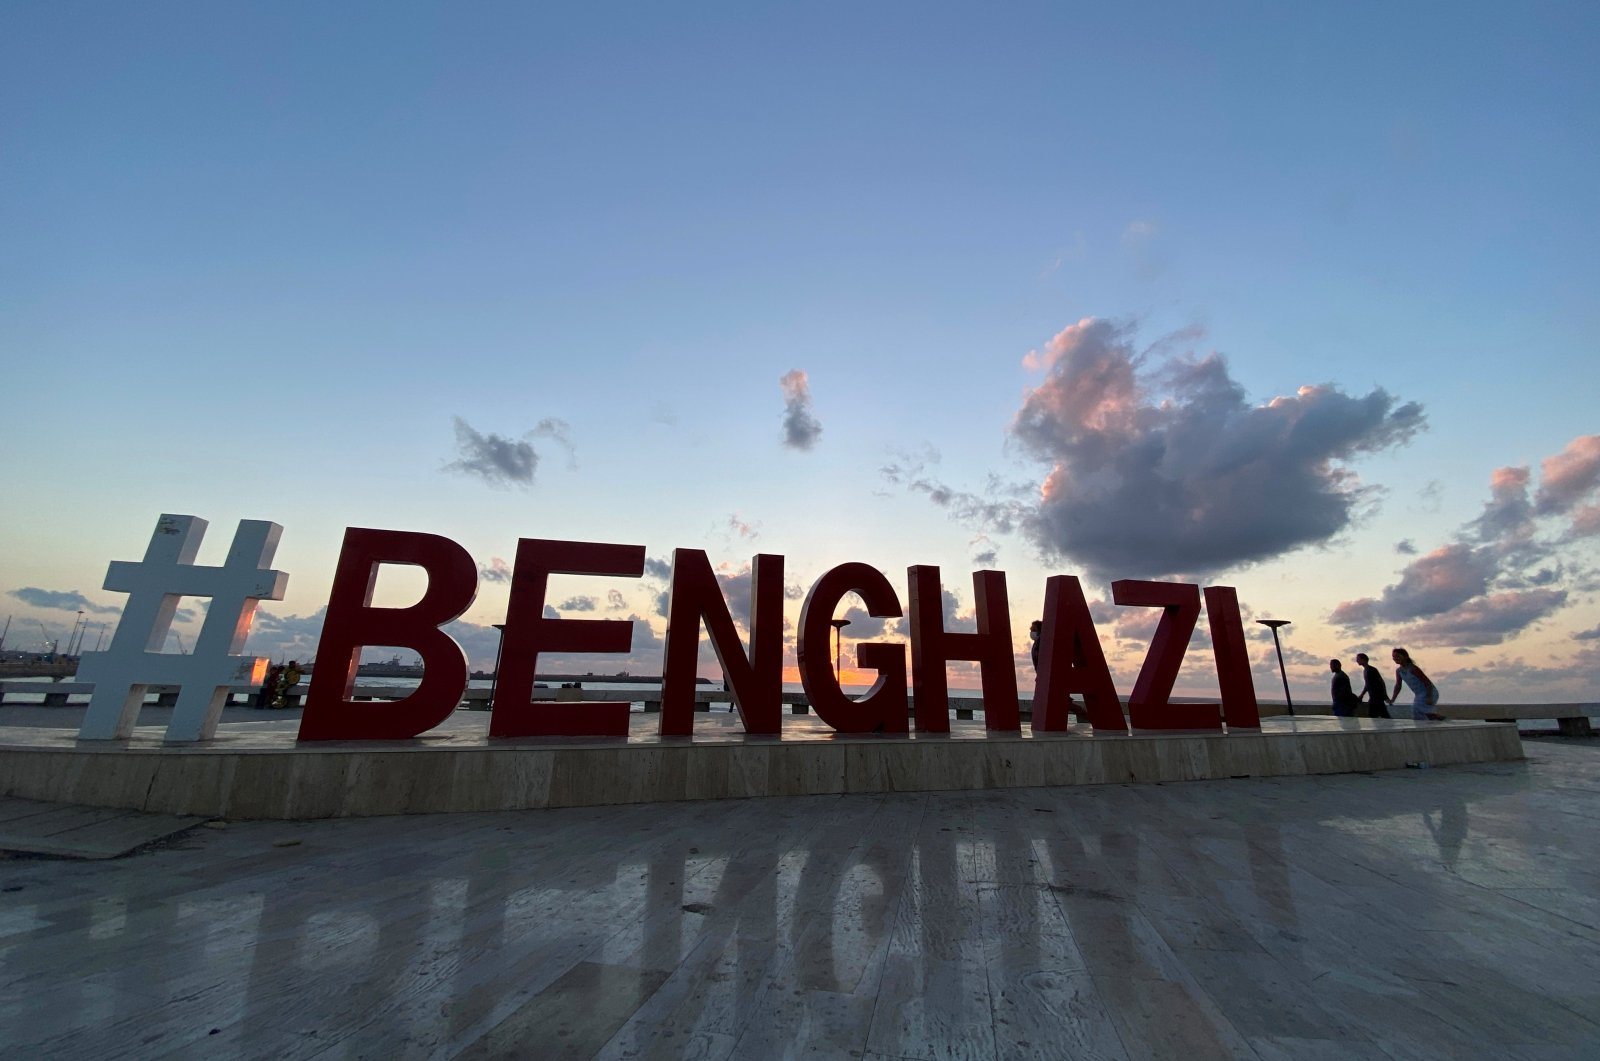 The word of Benghazi is placed next to a beach in Benghazi, Libya, Sept. 8, 2021. (REUTERS Photo)